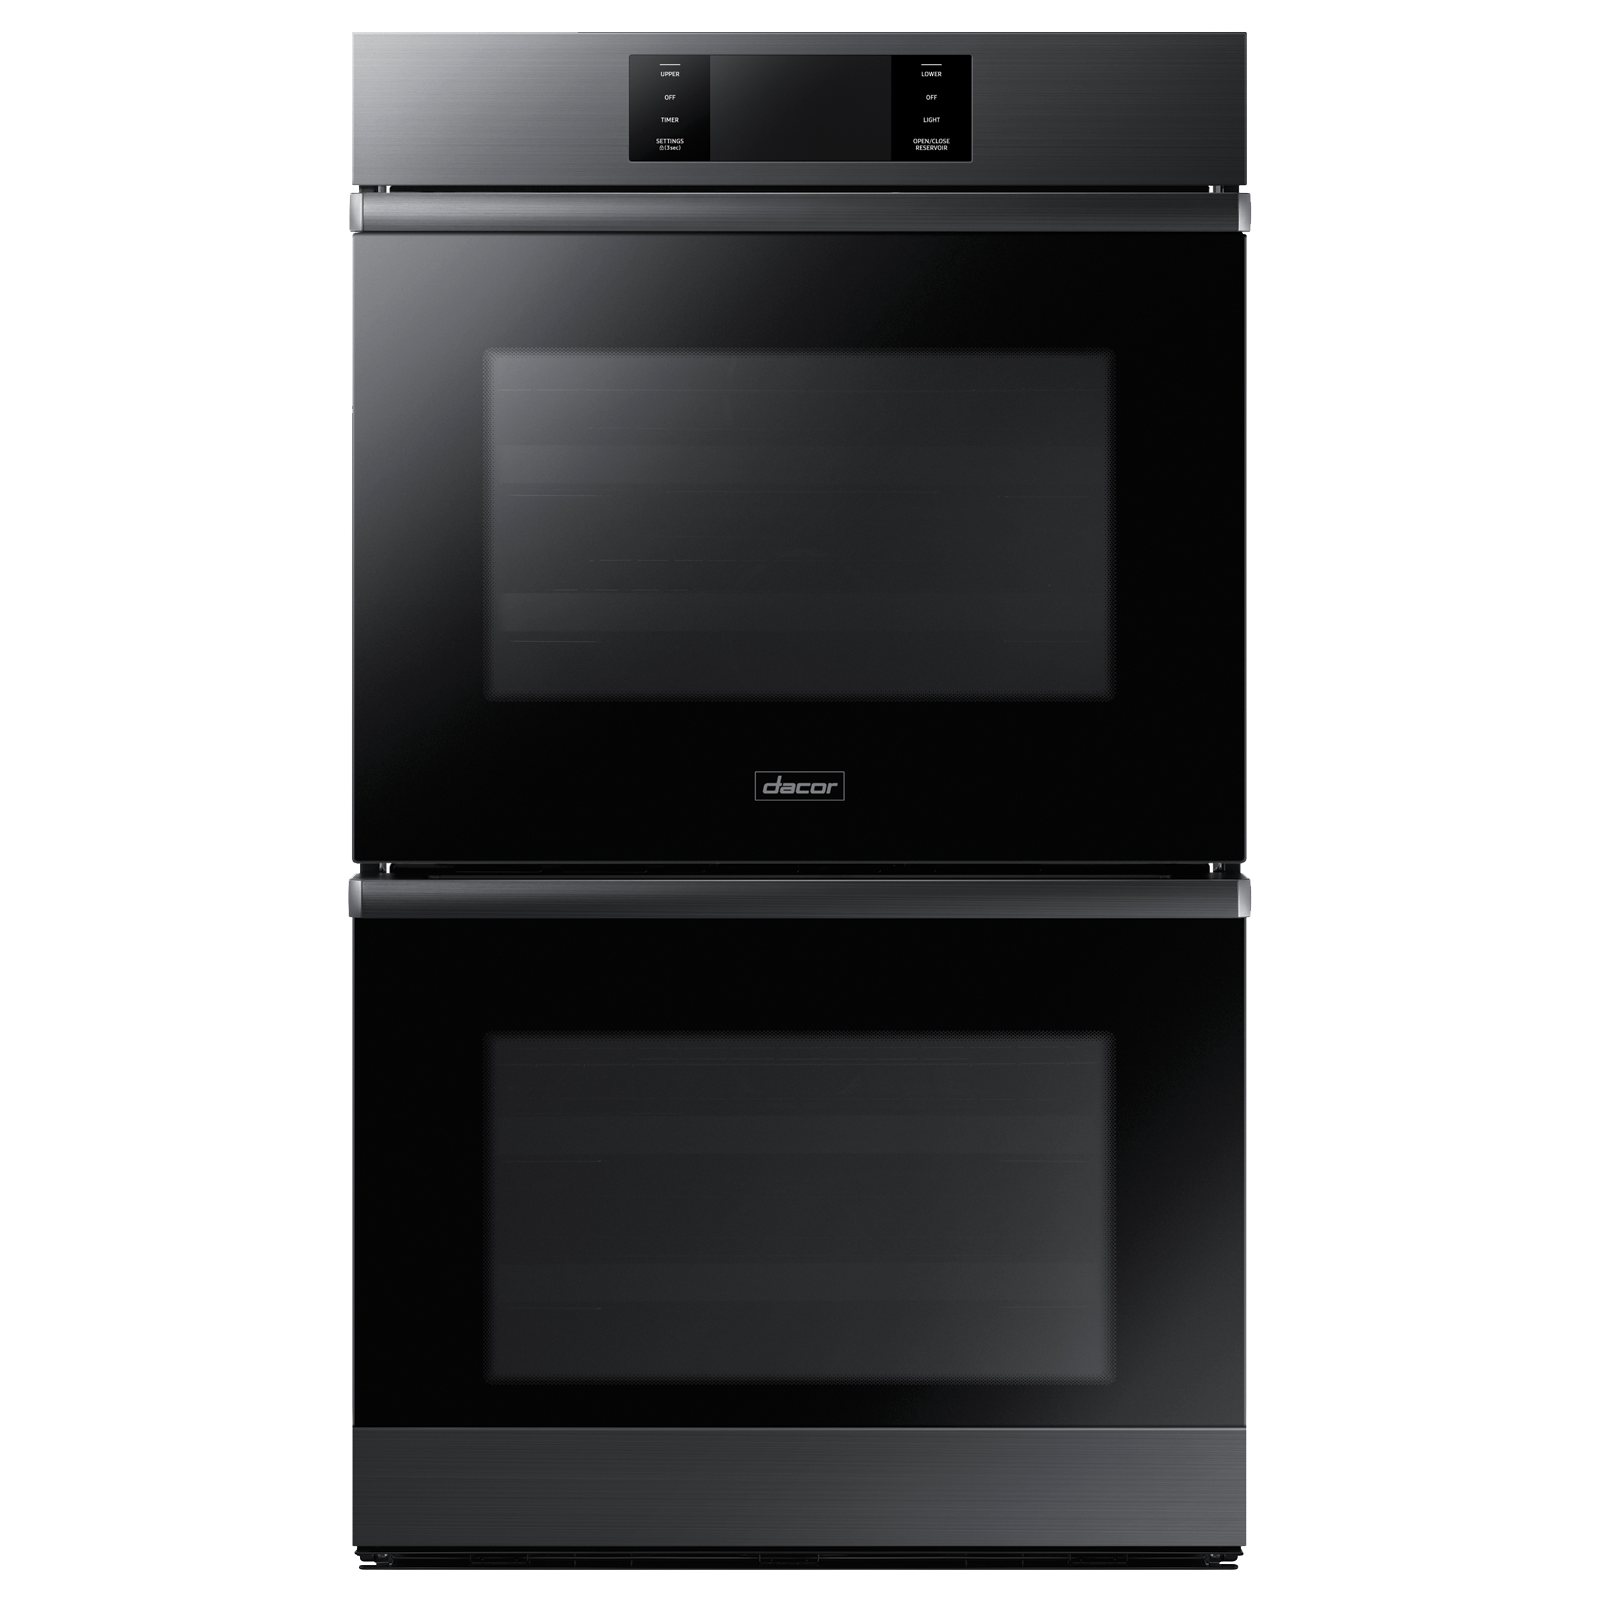 "Dacor Modernist 30"" Steam-Assisted Double Wall Oven, Graphite Stainless Steel"